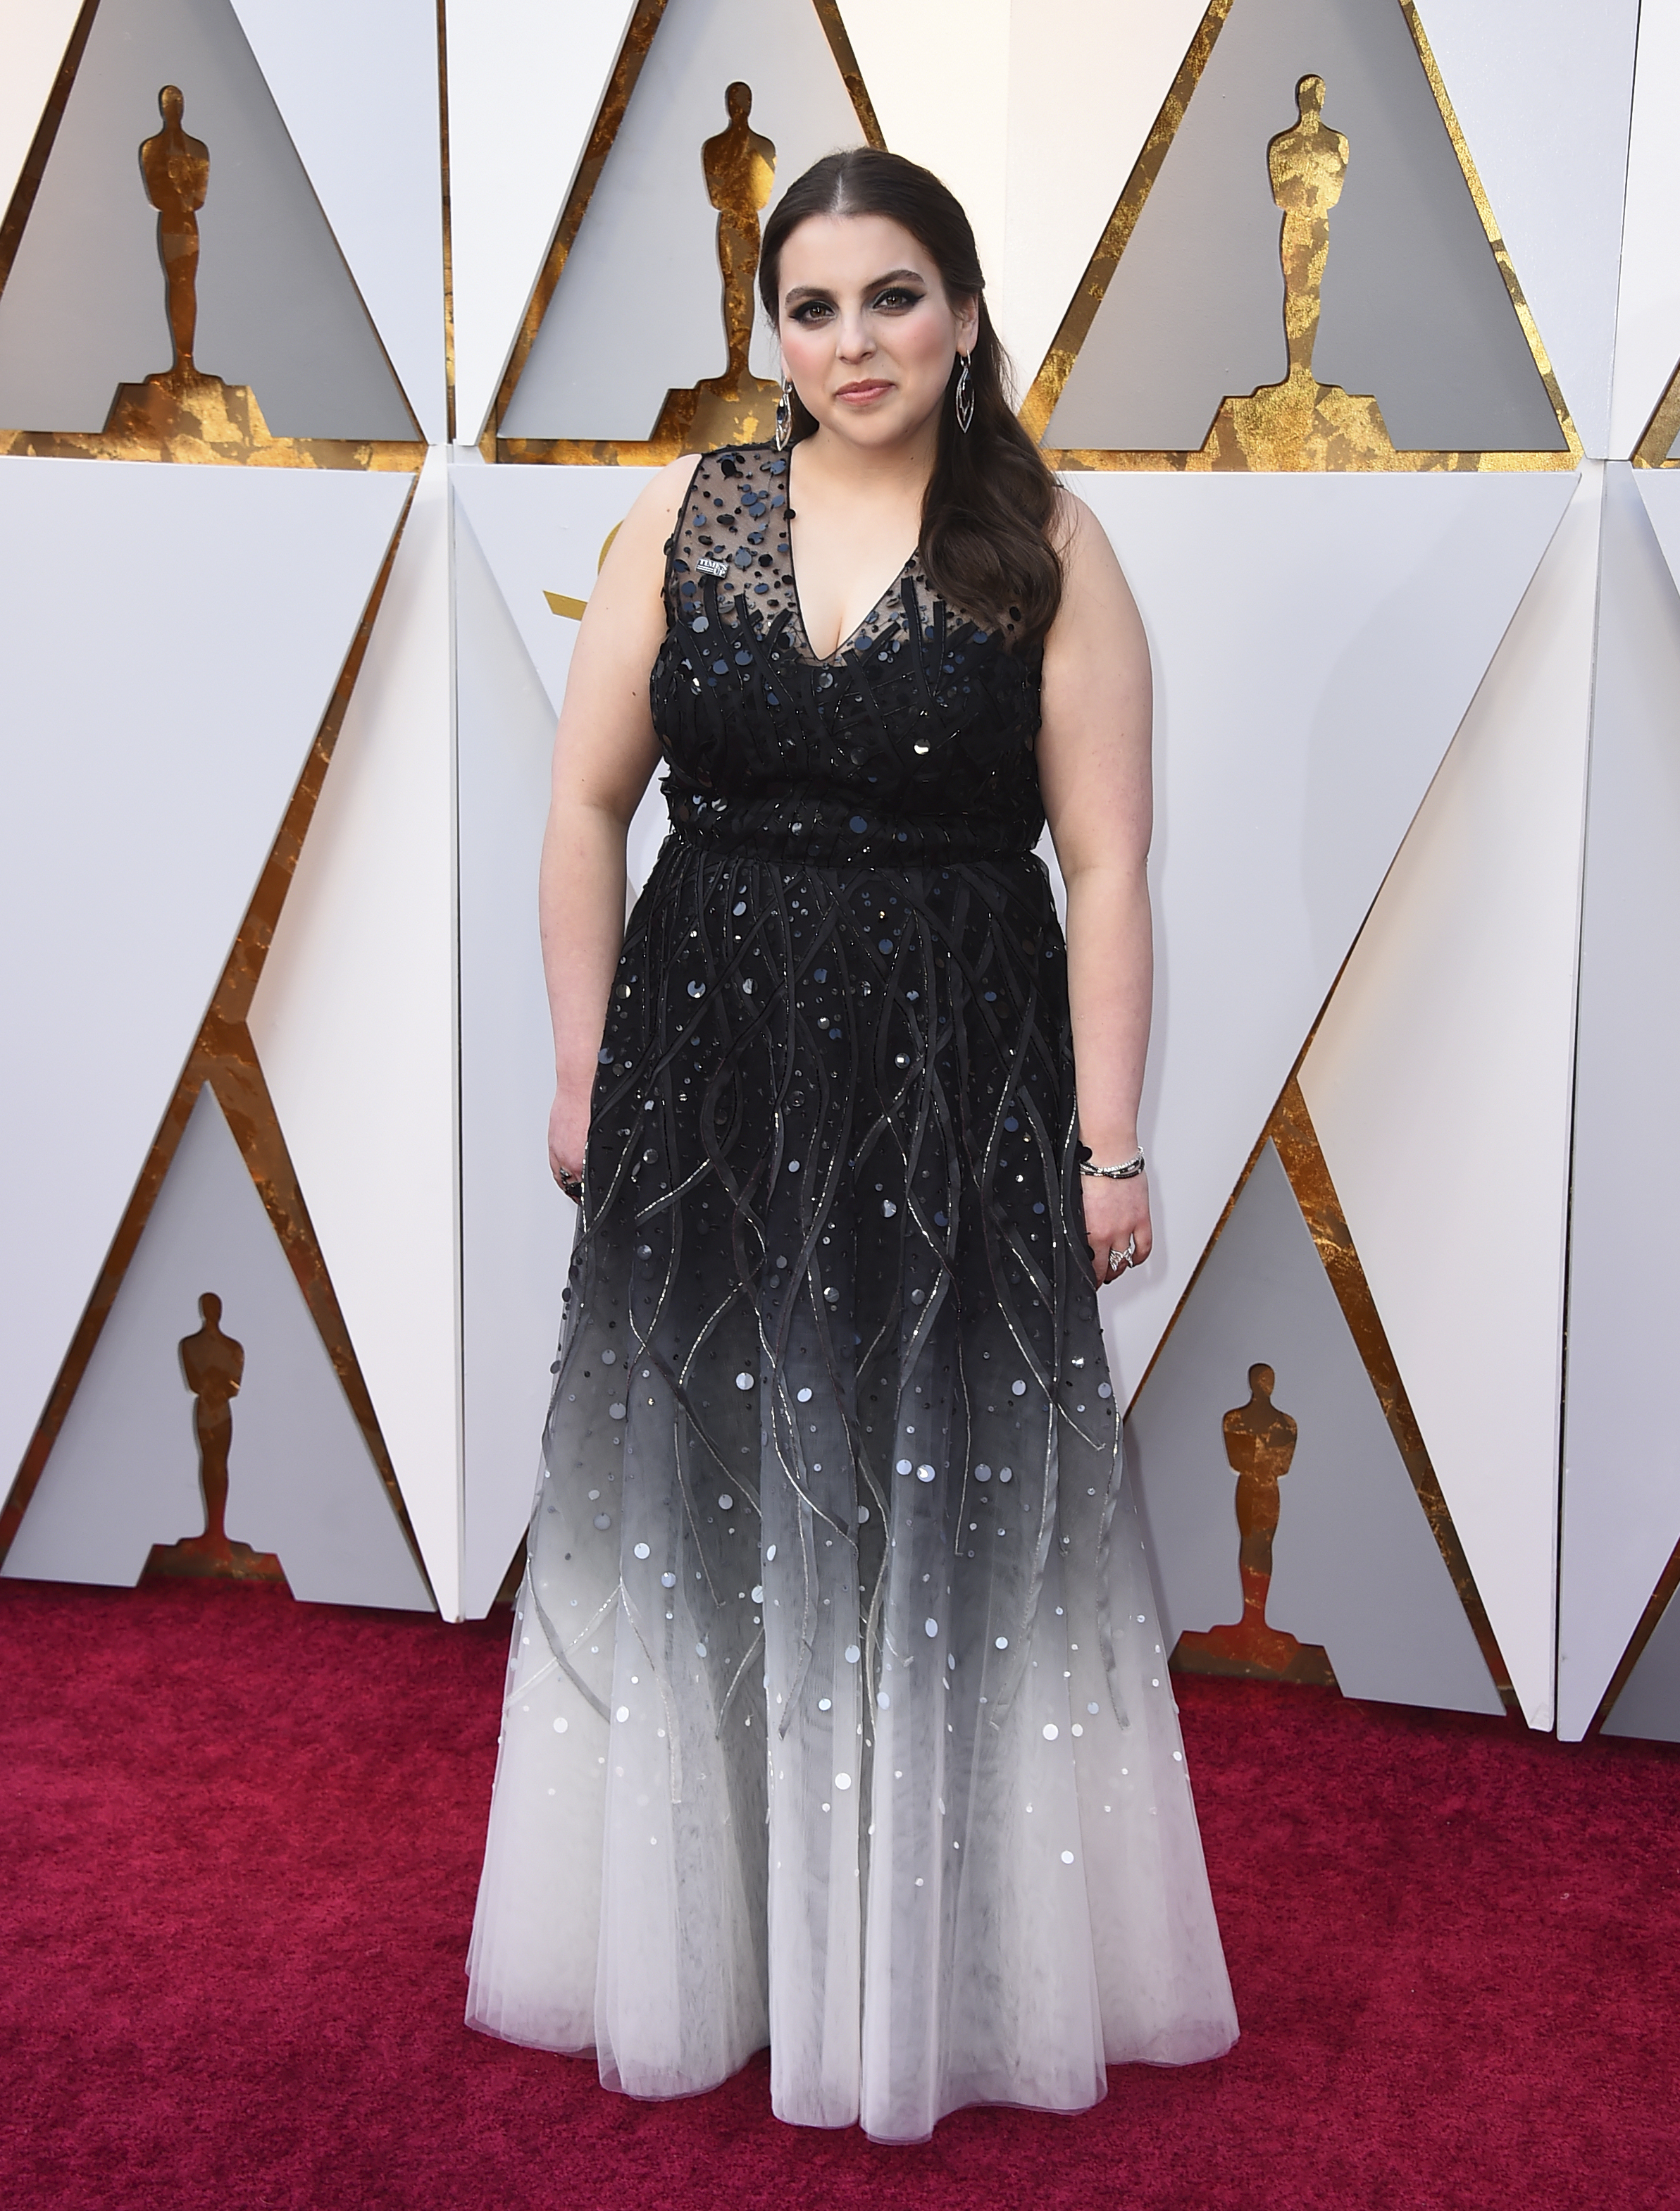 "<div class=""meta image-caption""><div class=""origin-logo origin-image none""><span>none</span></div><span class=""caption-text"">Beanie Feldstein of ''Lady Bird'' arrives at the Oscars on Sunday, March 4, 2018, at the Dolby Theatre in Los Angeles. (Jordan Strauss/Invision/AP)</span></div>"